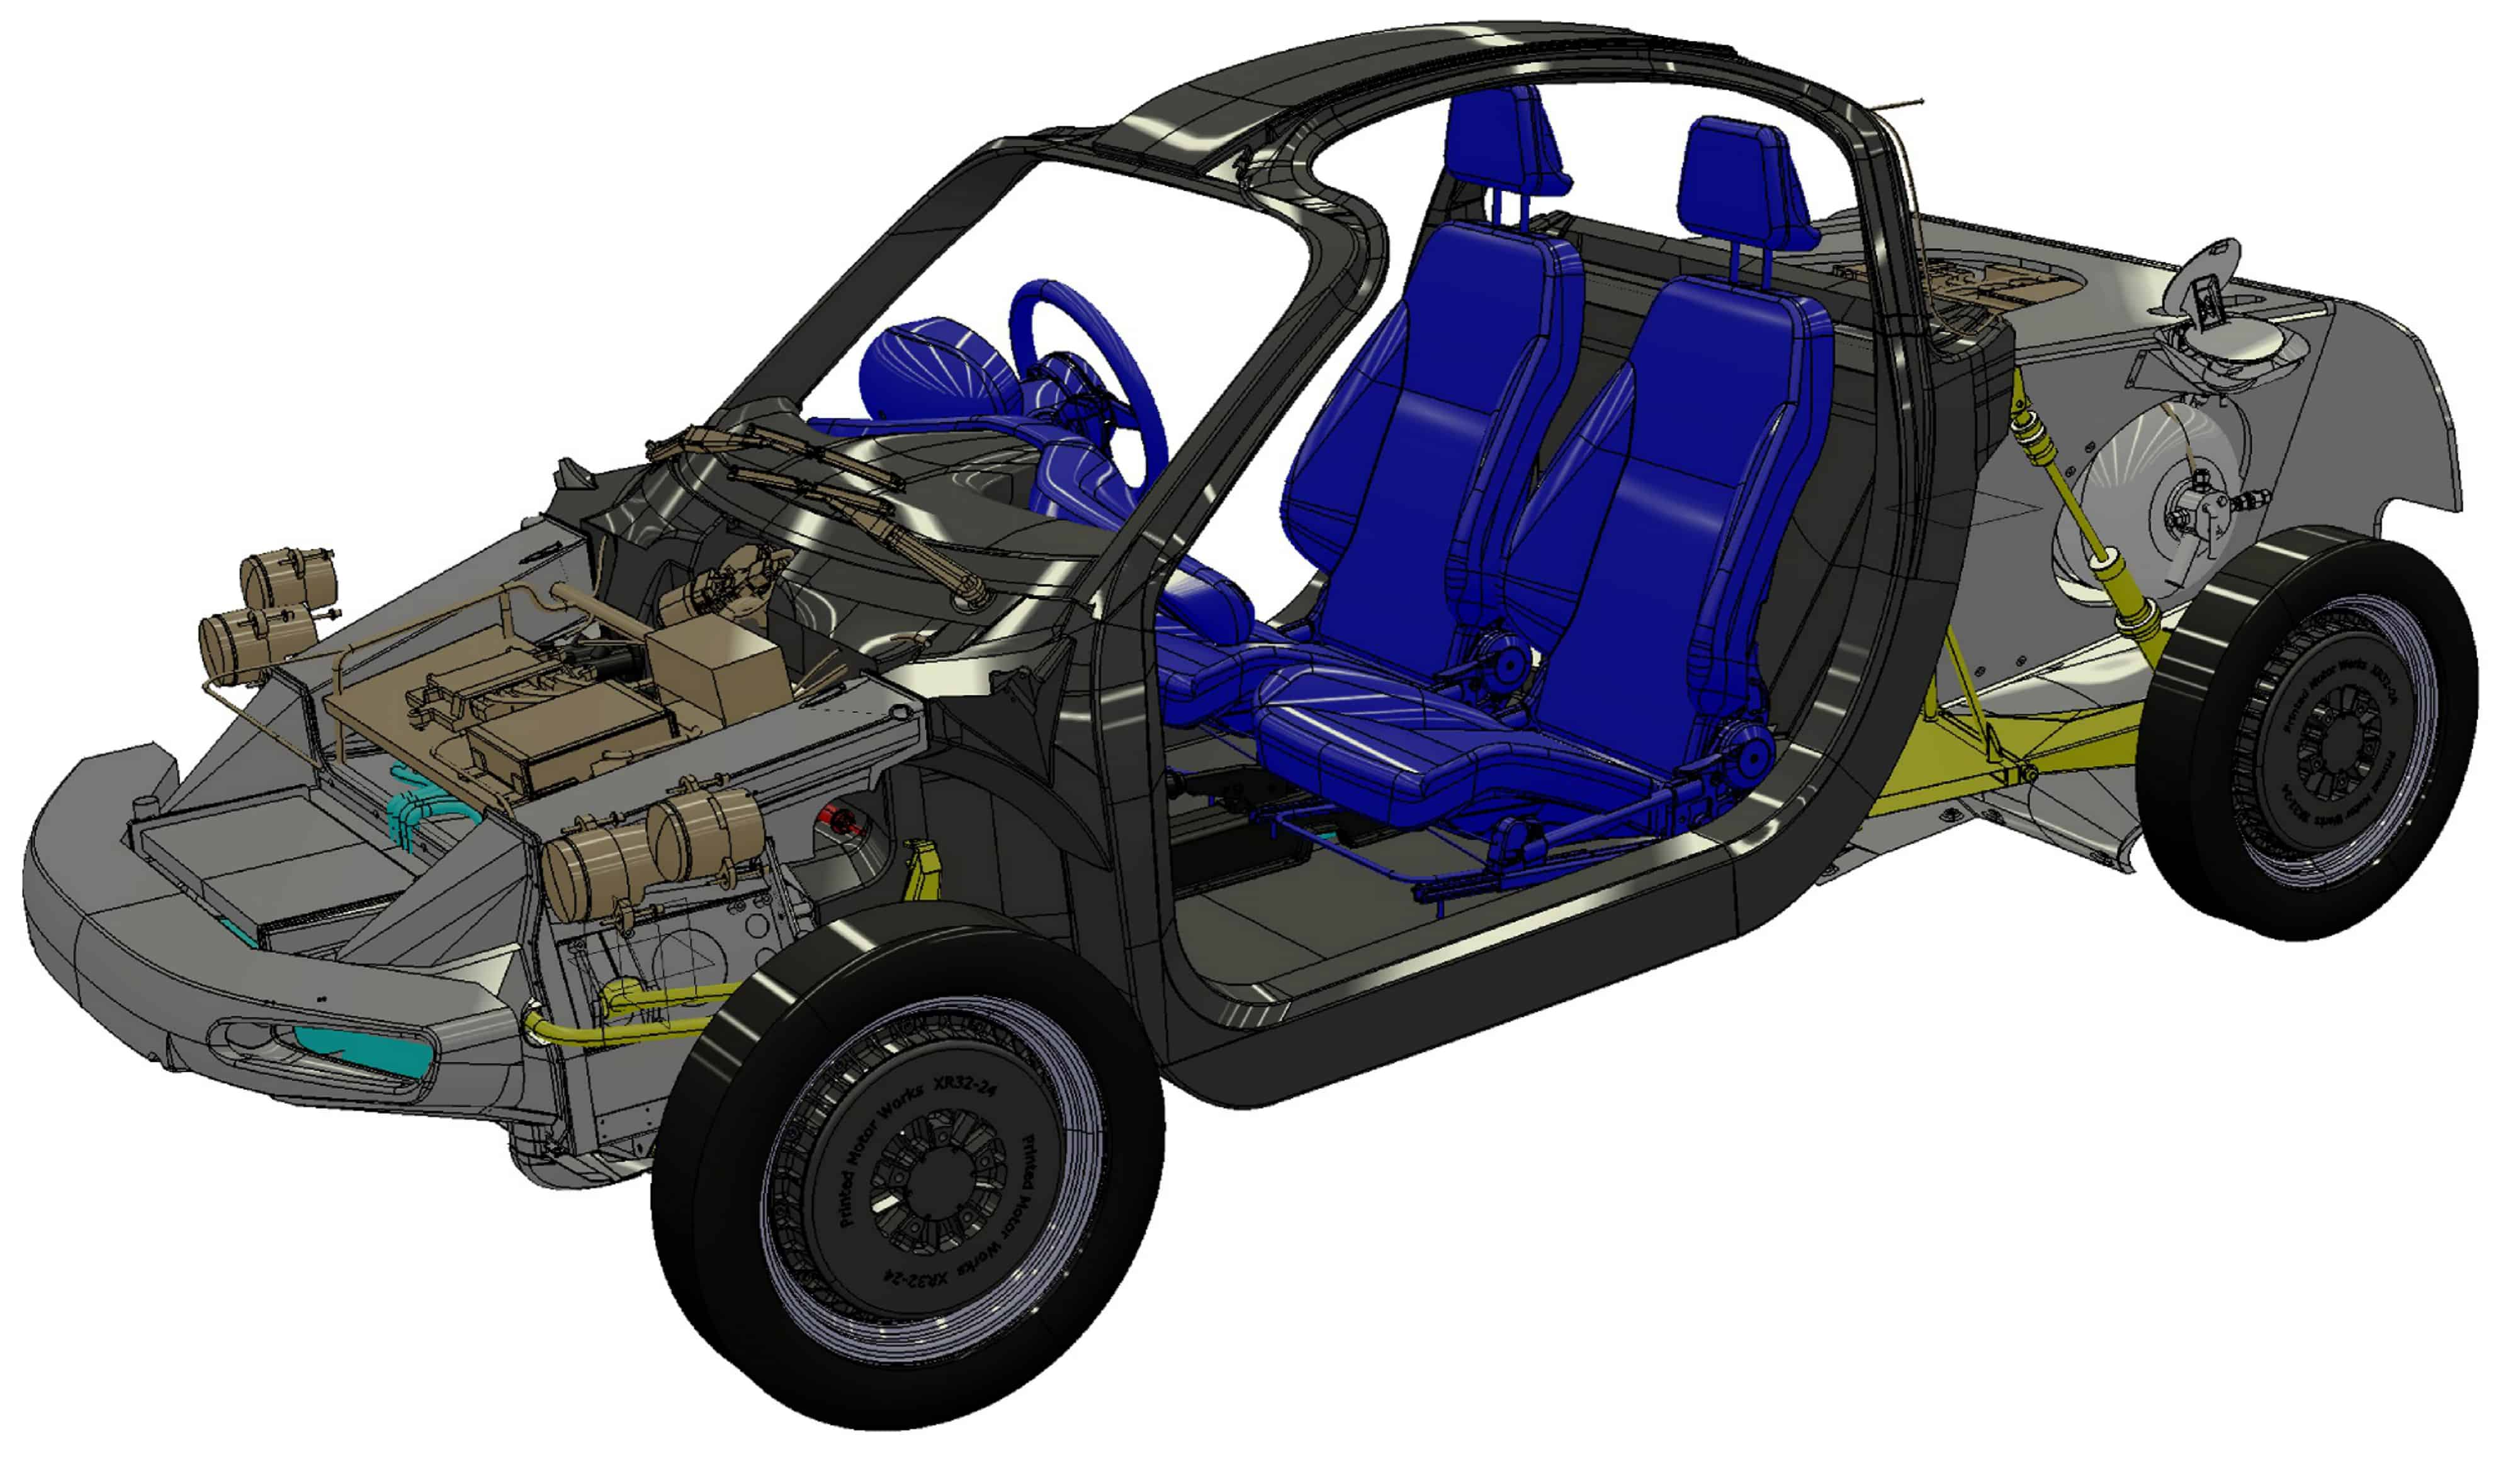 The riversipl car has a revolutionary design, based around a fuel cell and wheel-hub motors